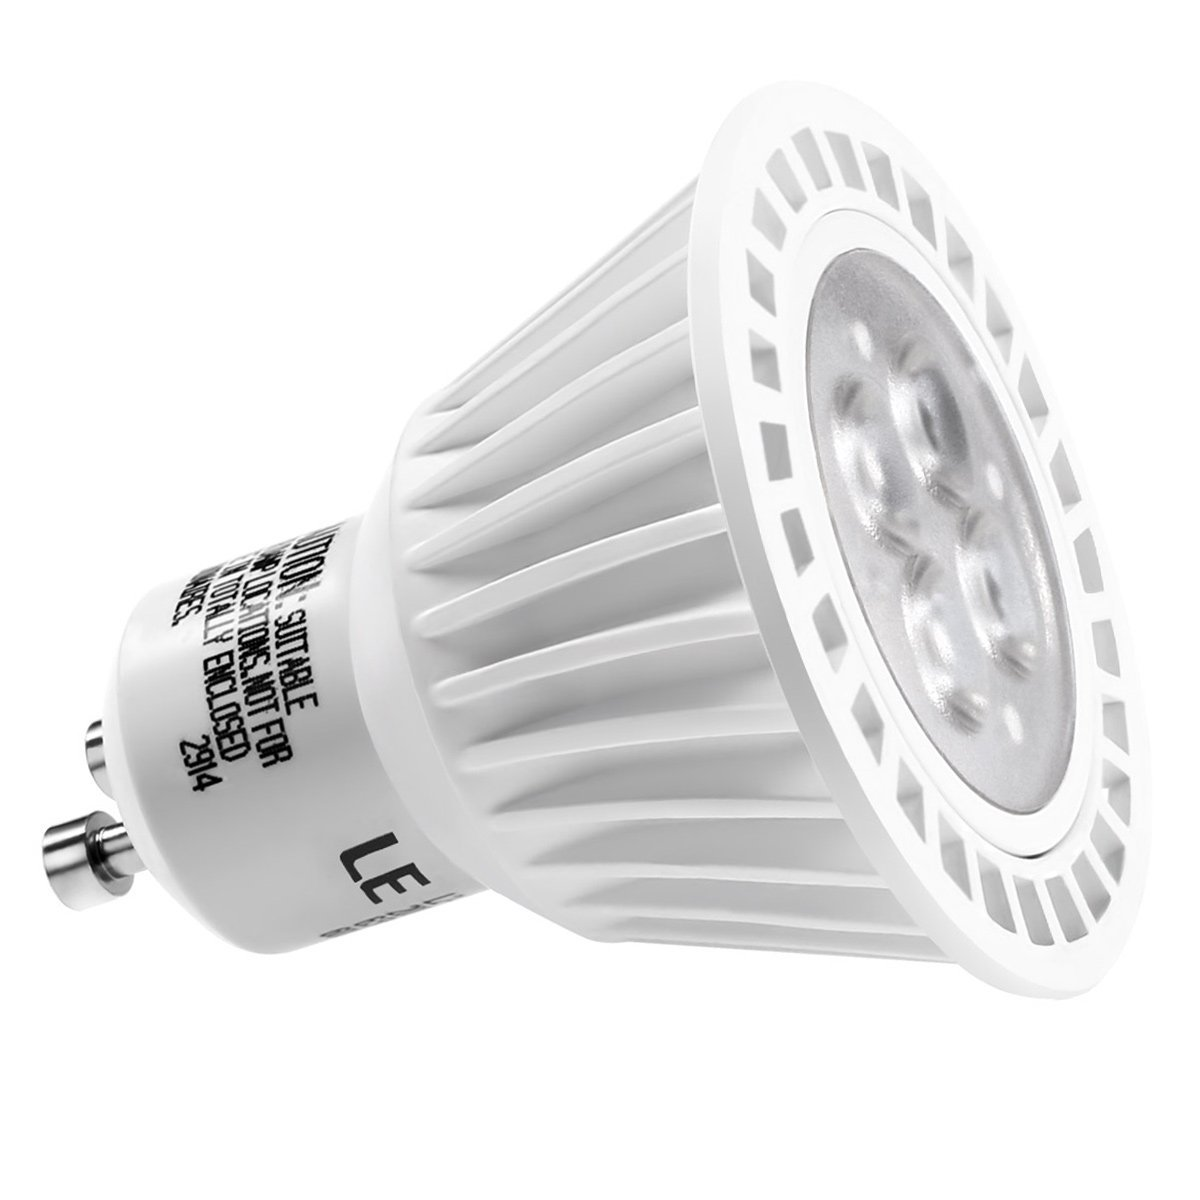 50w Halogen Bulb Lighting Ever Top Quality Led Fixtures